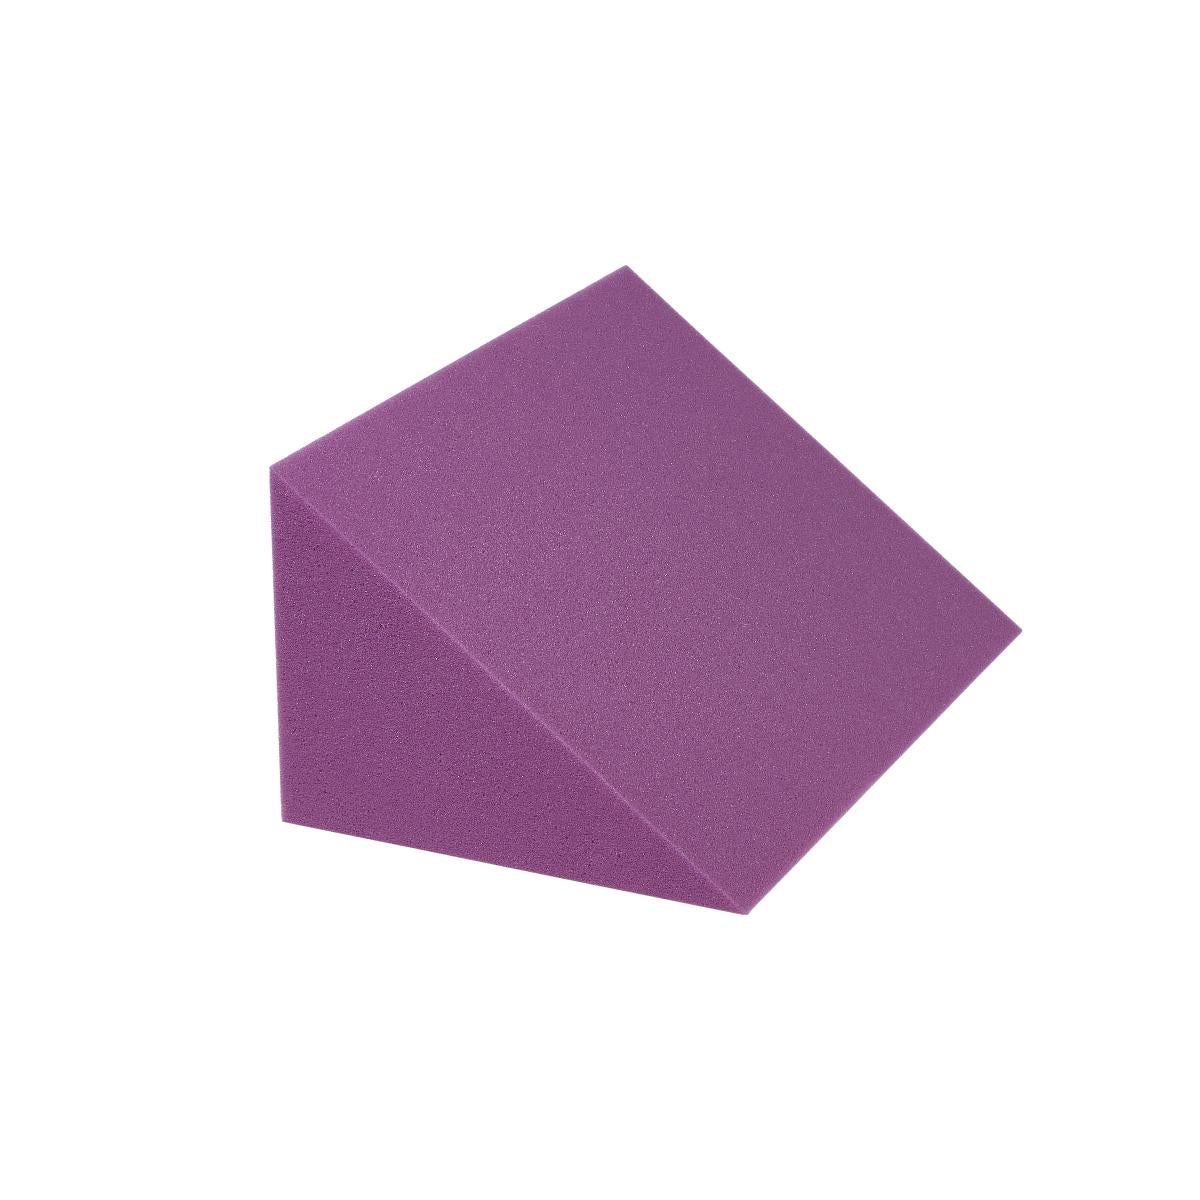 Disposable Foam Positioning Wedges - Case of 6 - Medical Supply Surplus